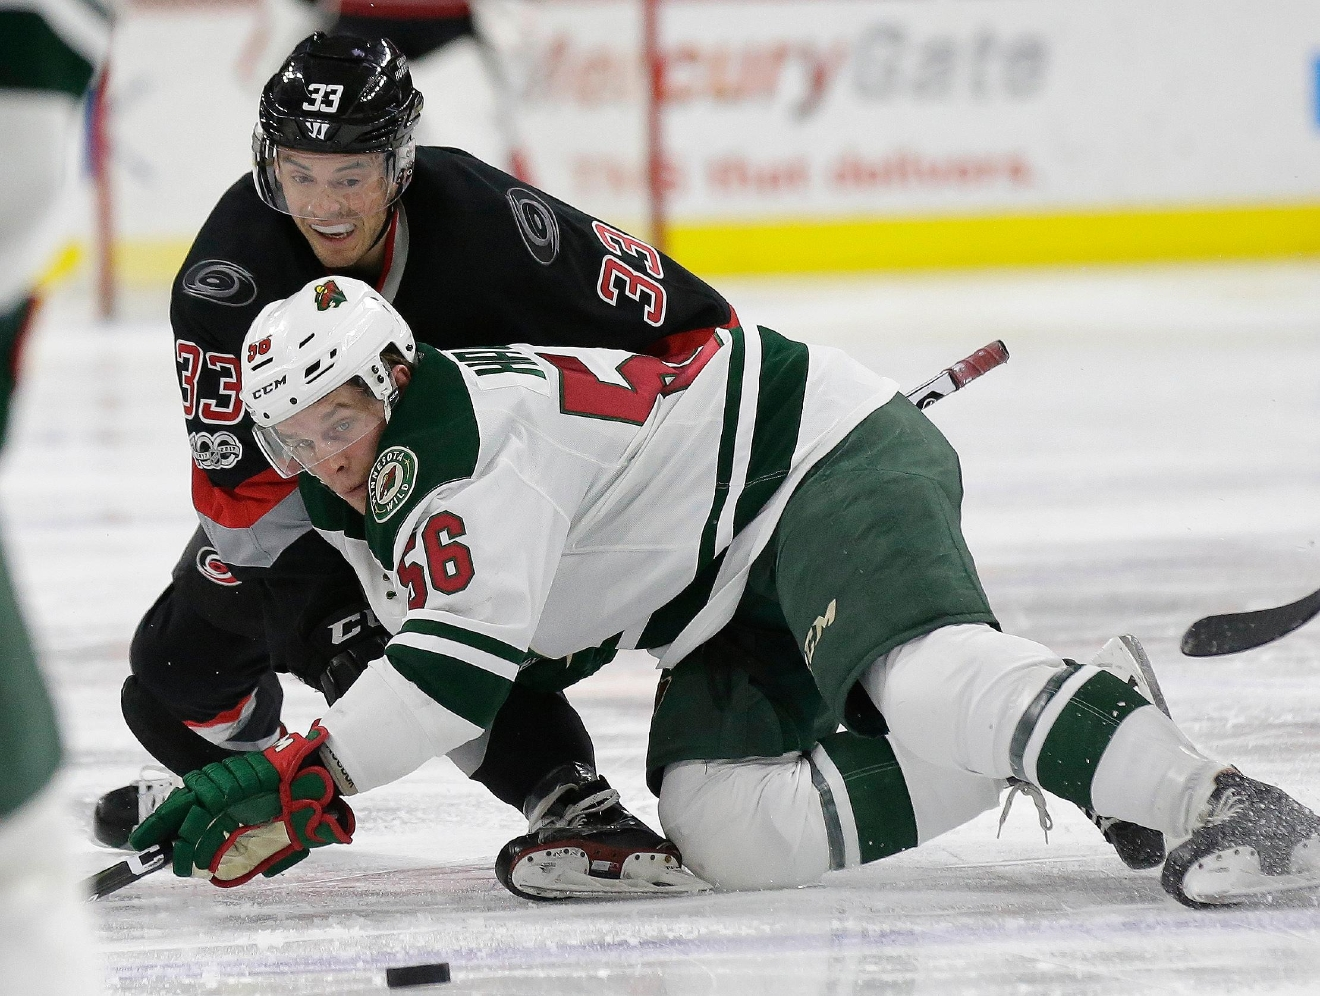 Carolina Hurricanes' Derek Ryan (33) and Minnesota Wild's Erik Haula (56), of Finland, struggle for possession of the puck during the second period of an NHL hockey game in Raleigh, N.C., Thursday, March 16, 2017. (AP Photo/Gerry Broome)